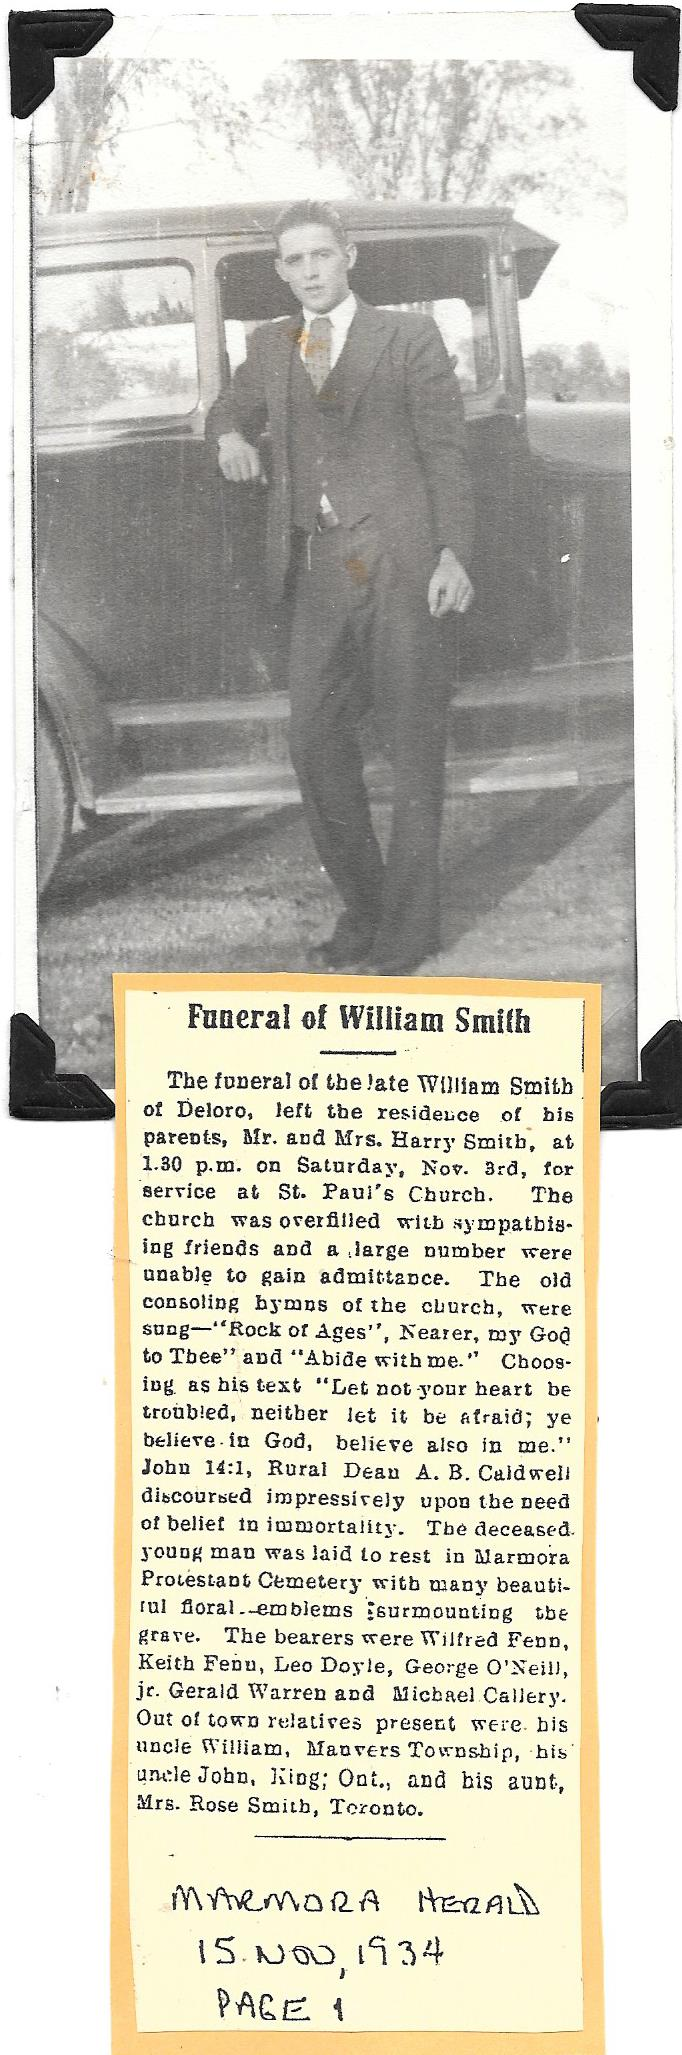 Funeral of William Smith.jpg